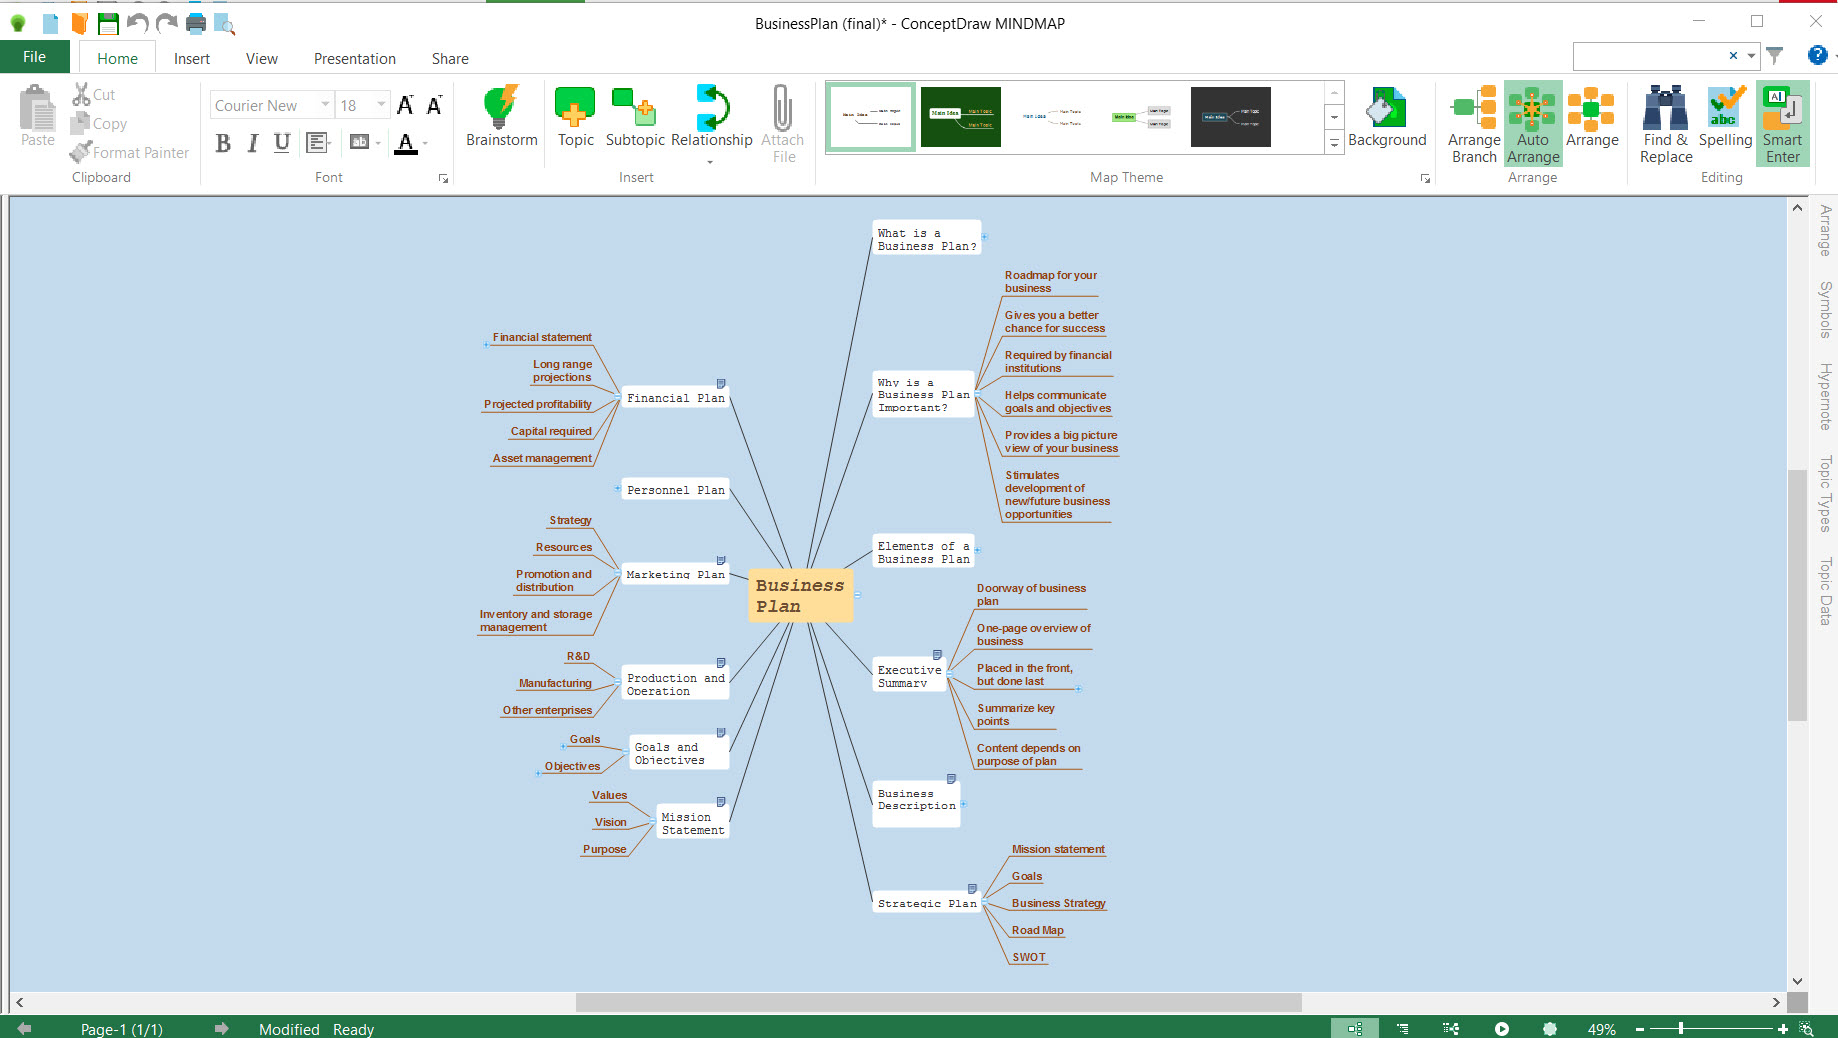 ConceptDraw MINDMAP Demo - Business Plan Mind Map Template